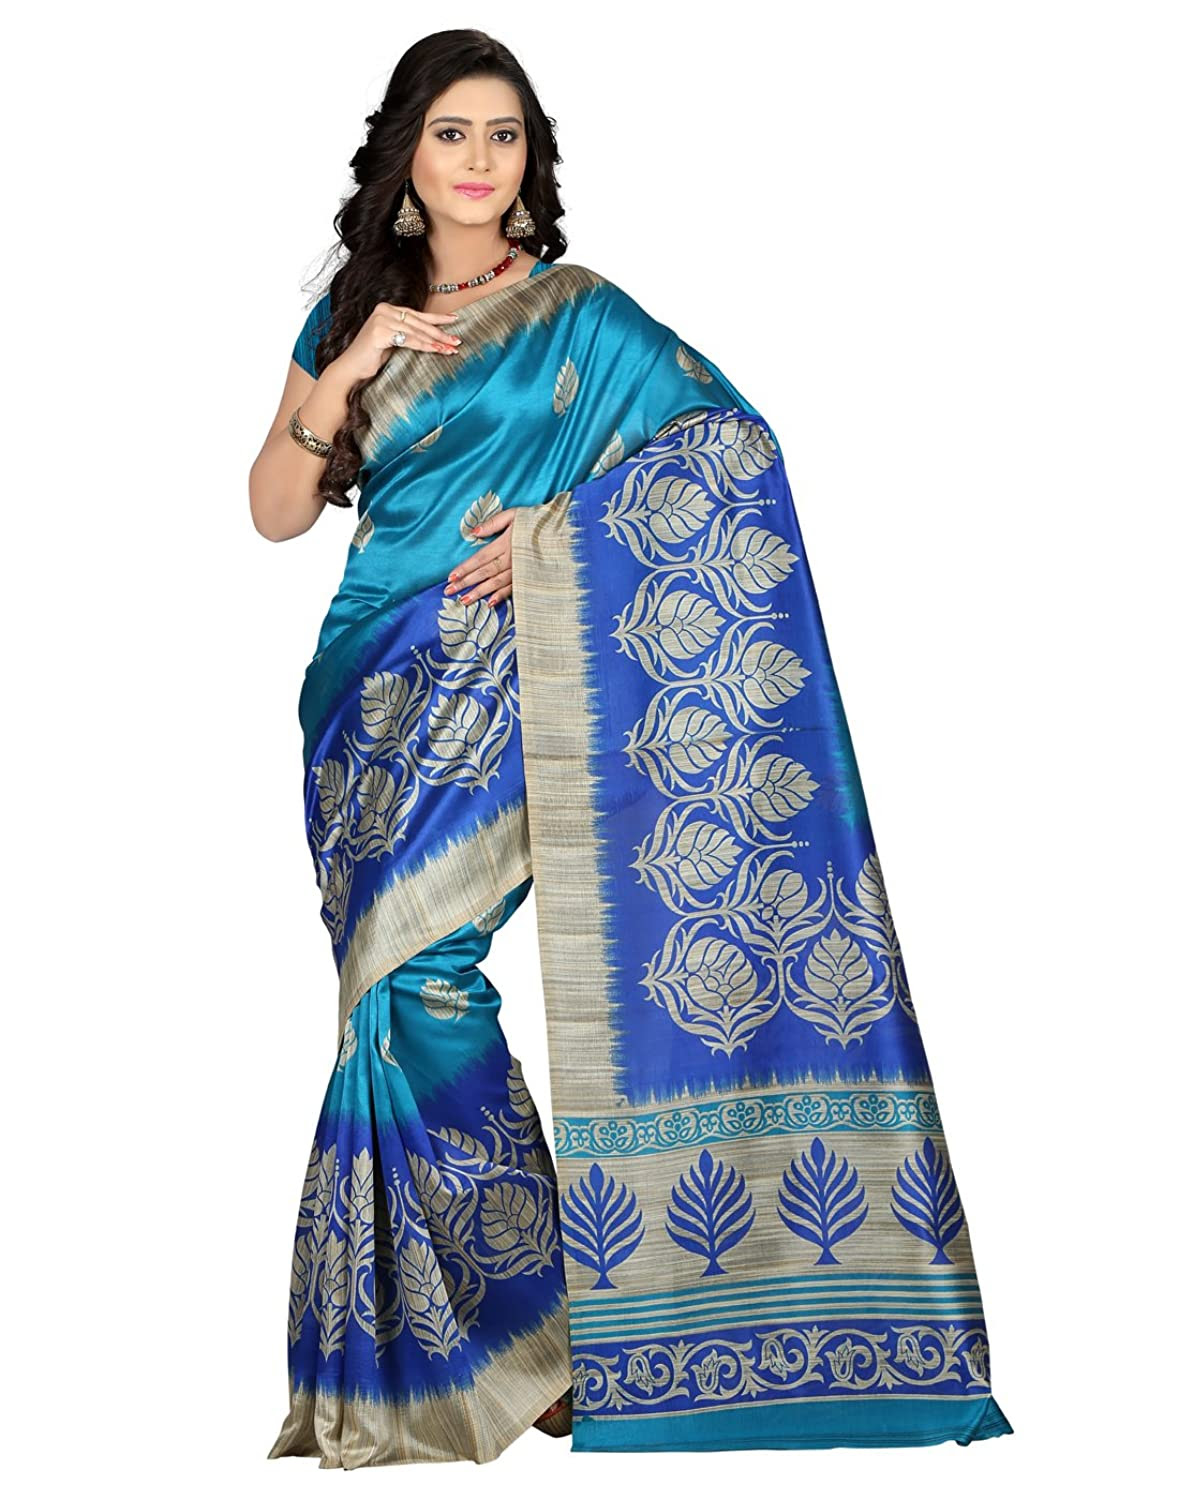 e-VASTRAM Women's Mysore Art Silk Saree